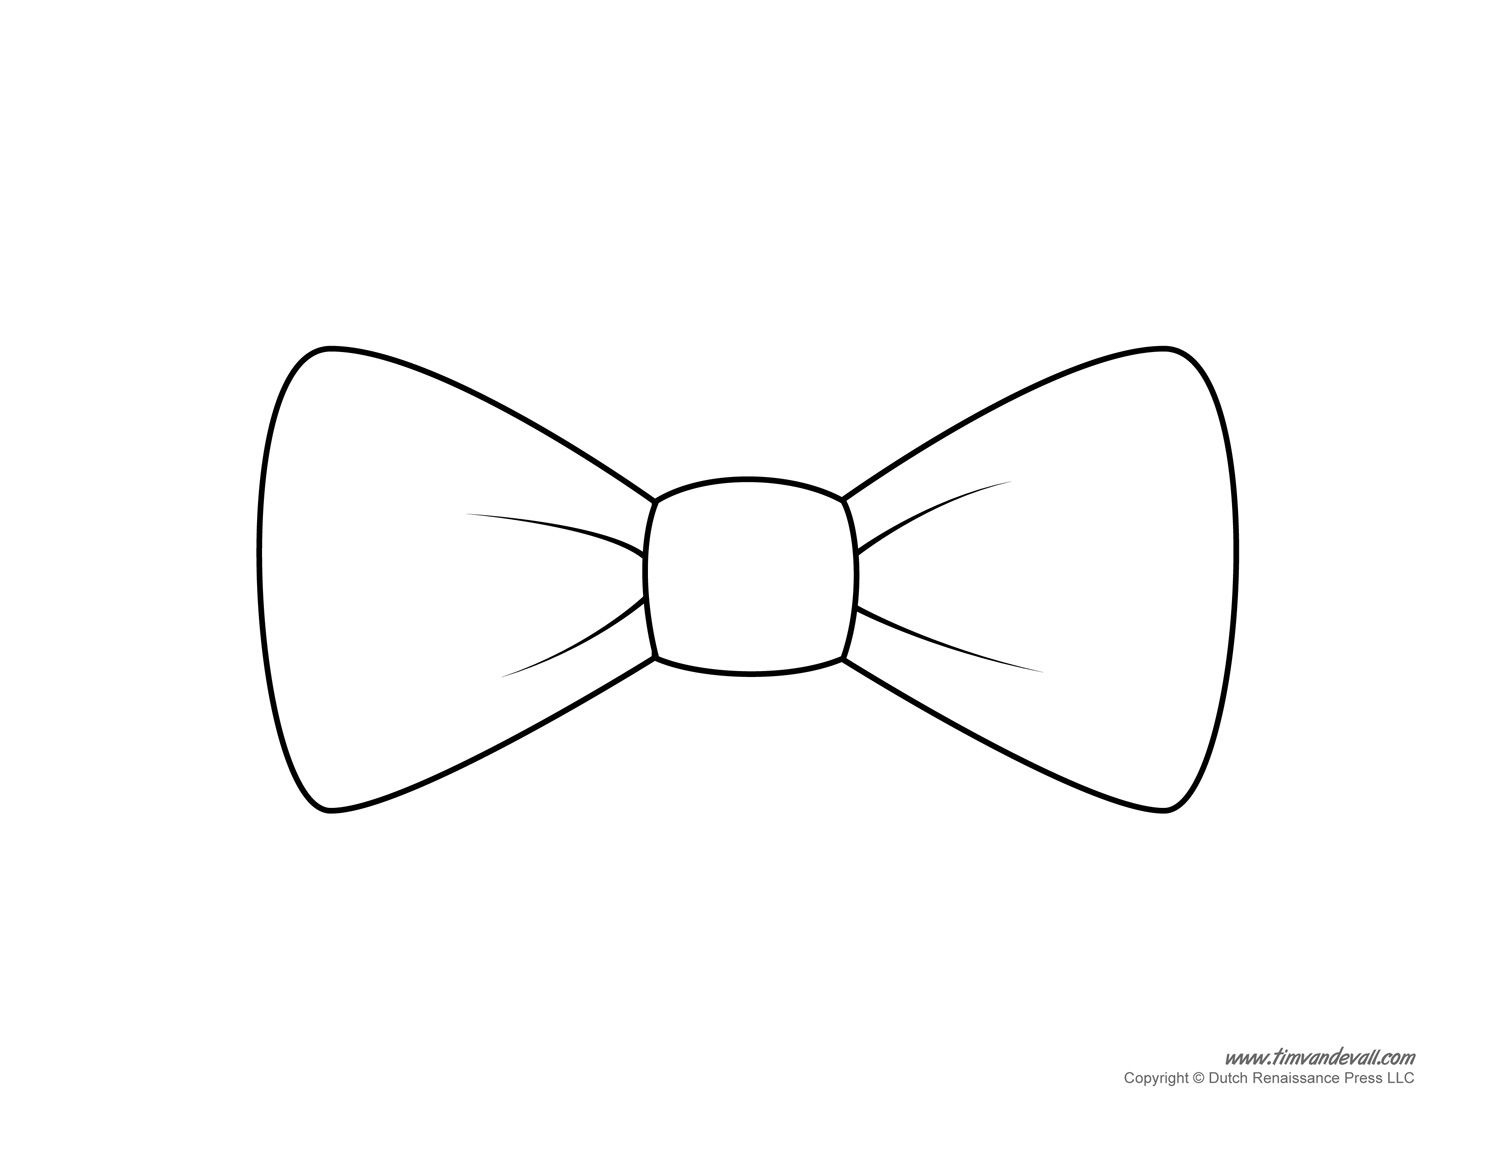 Bowtie clipart black and white, Bowtie black and white.